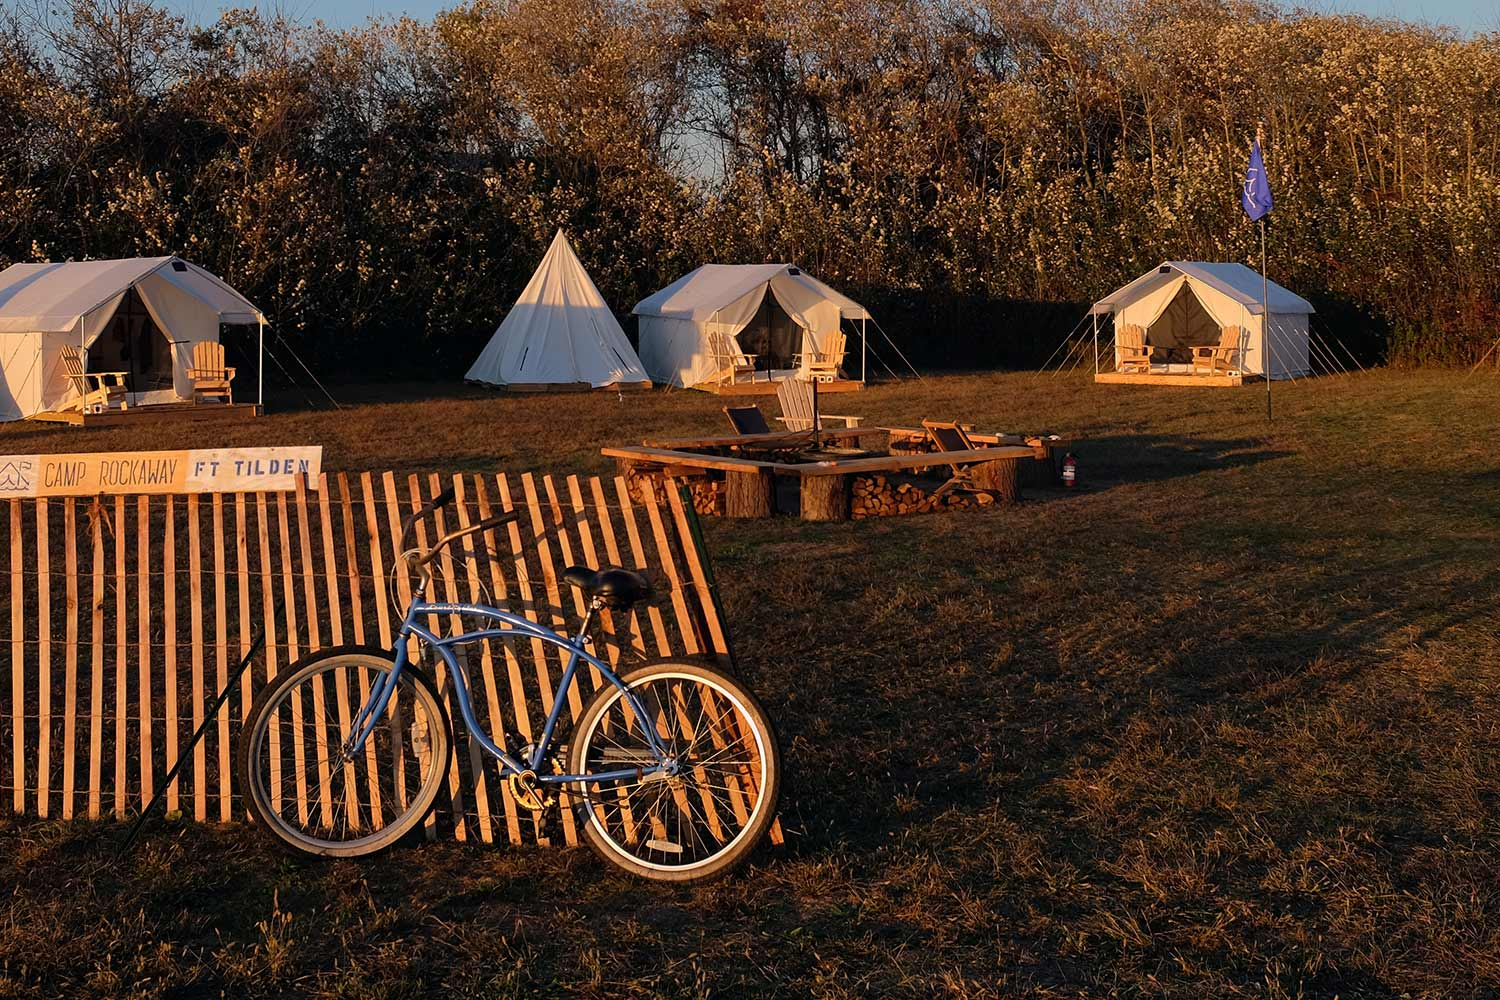 Sun setting over campsite at Fort Tilden, where a blue bike rests in the foreground against a fence